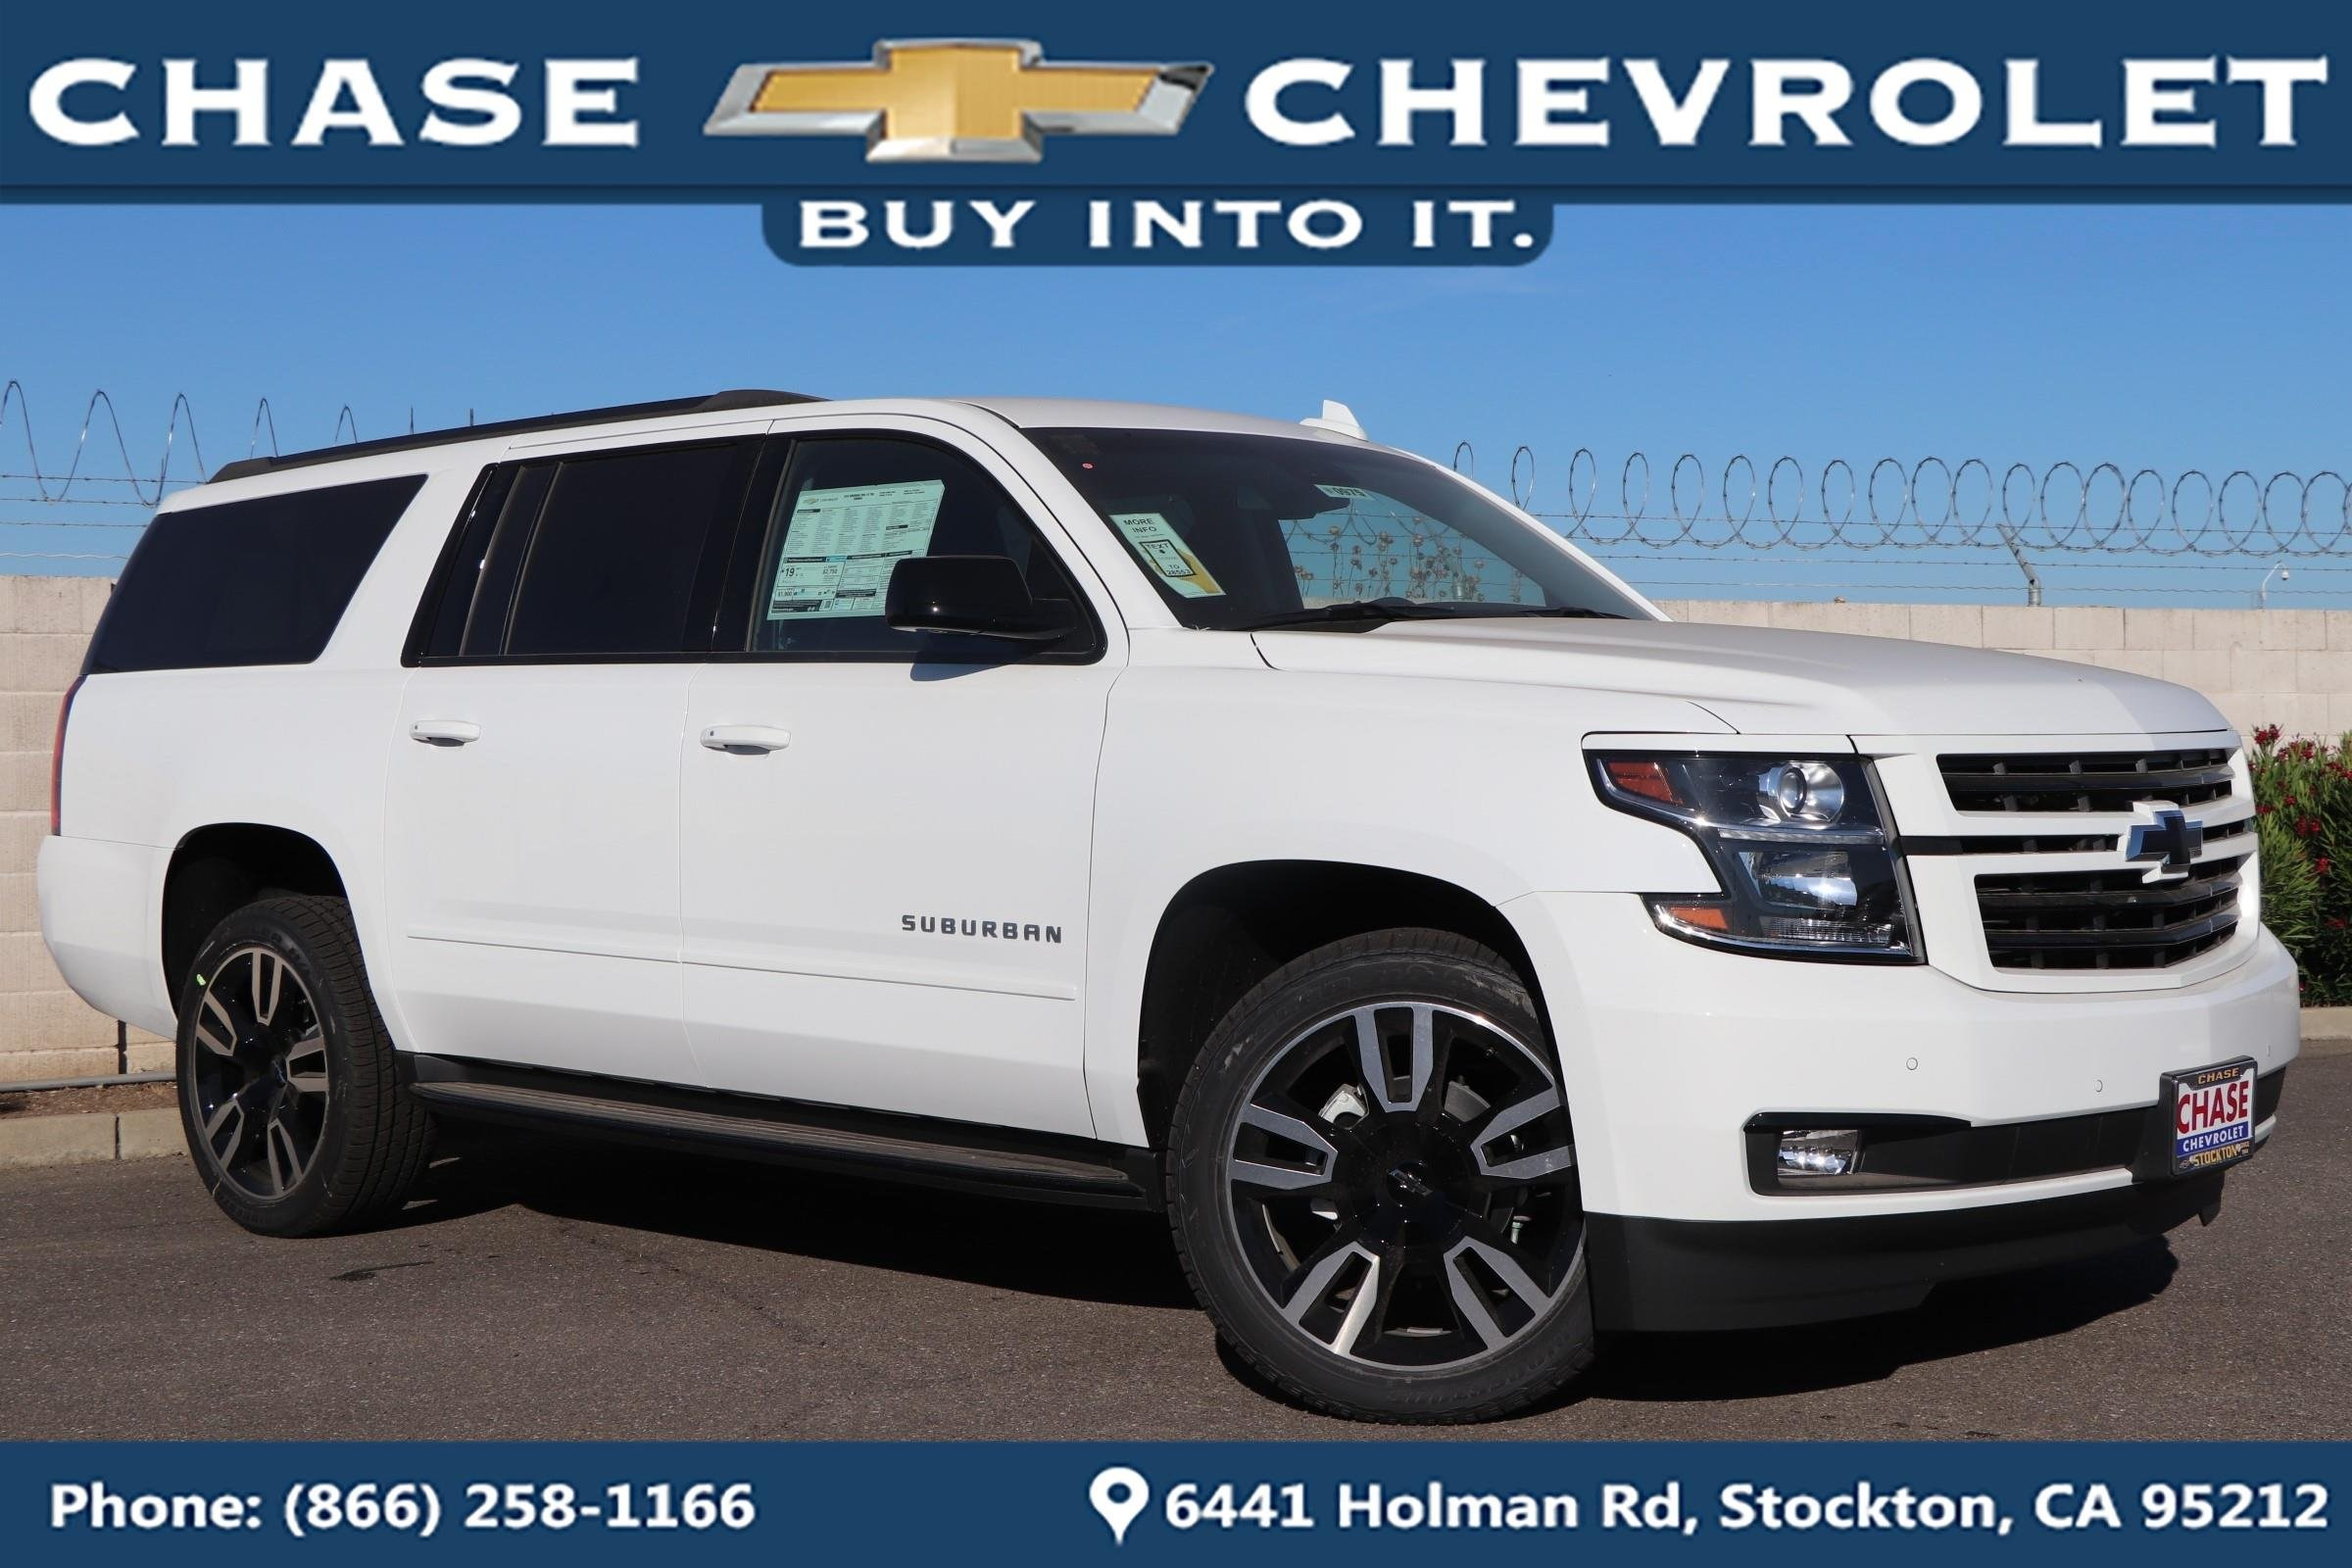 New 2018 Chevrolet Suburban for Sale in Stockton CA